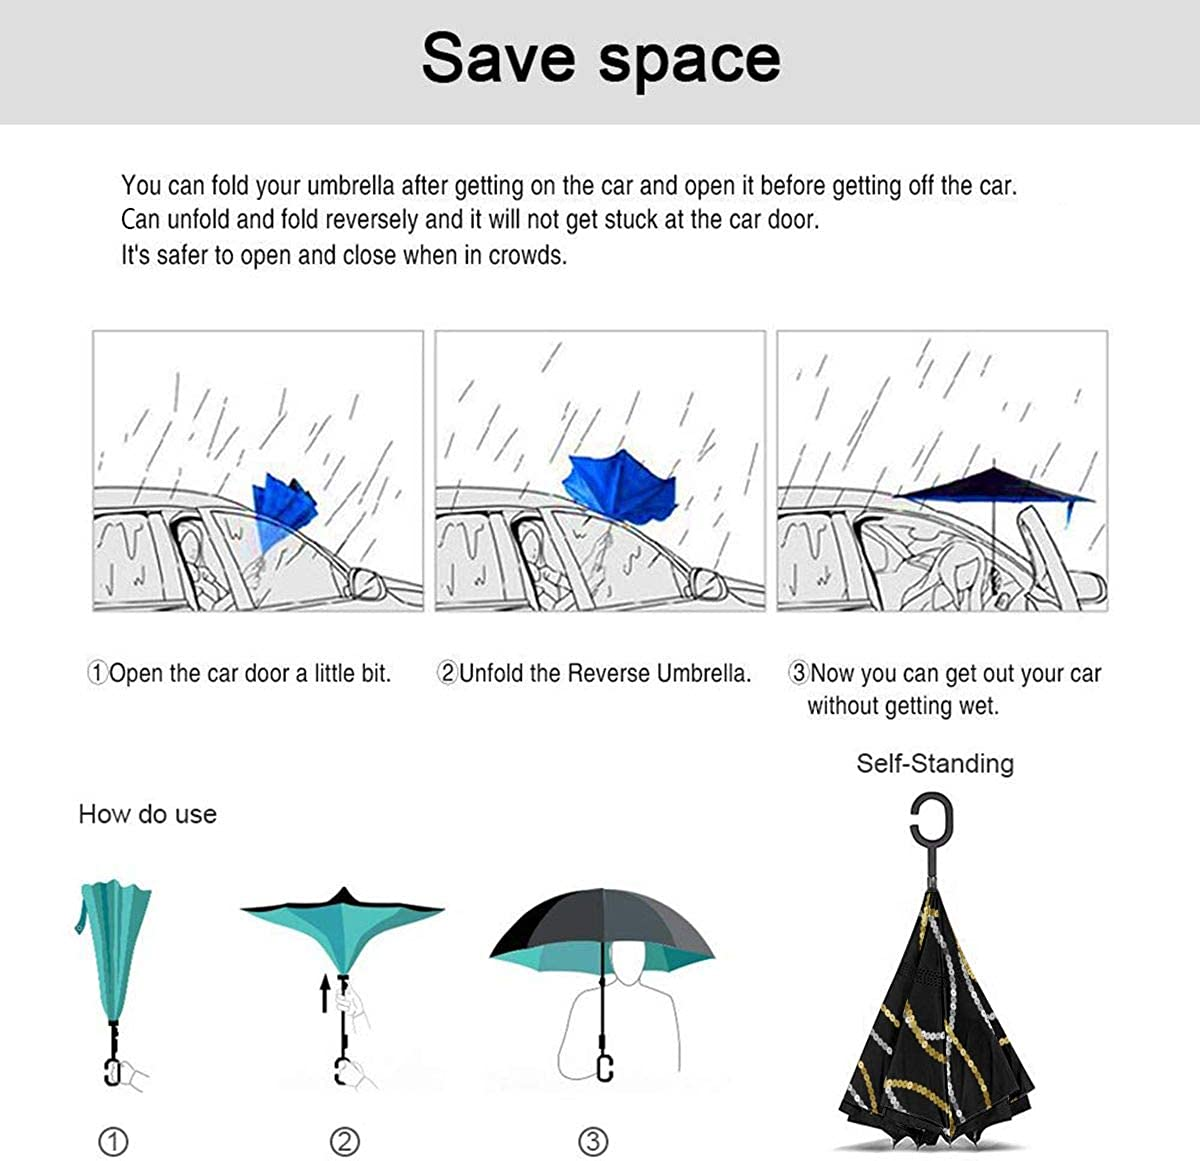 Sequins Seamless Pattern Vertical Wave Reverse Umbrella Double Layer Inverted Umbrellas For Car Rain Outdoor With C-Shaped Handle Customized